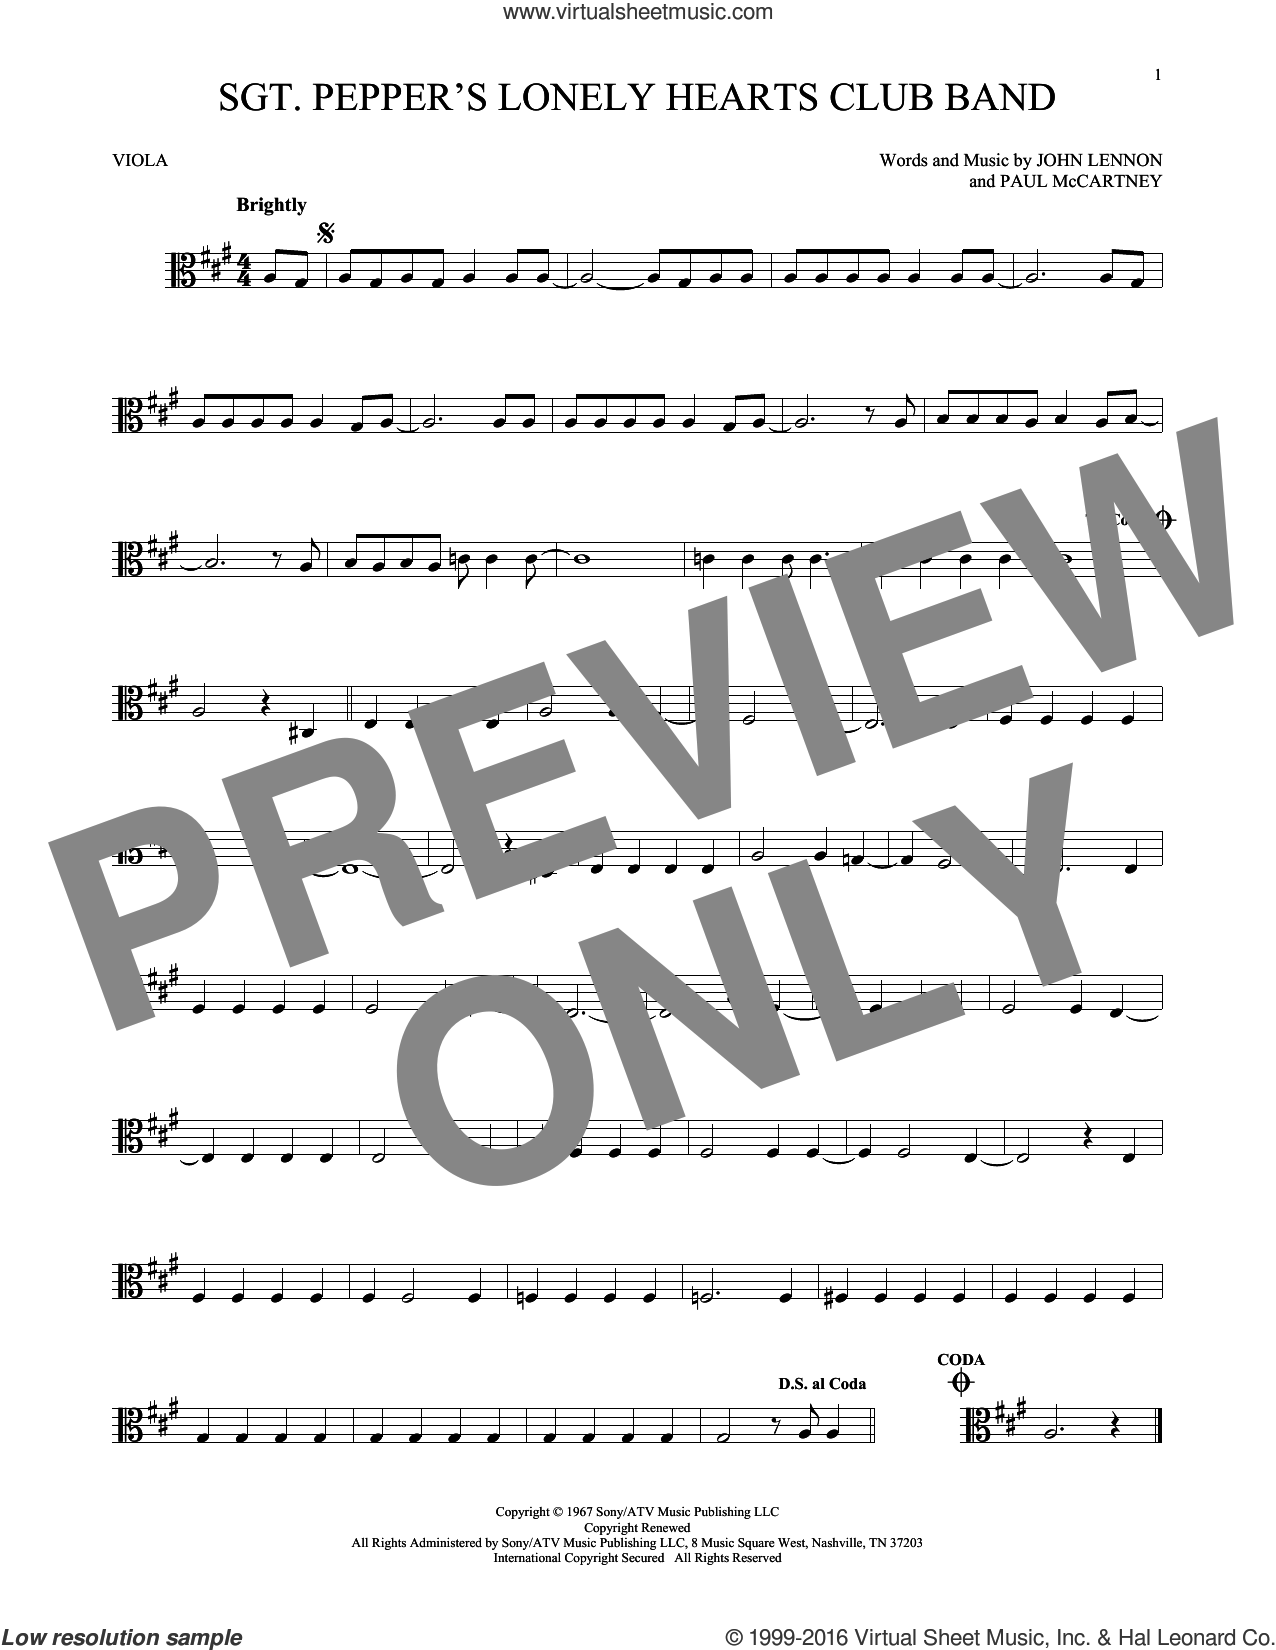 Sgt. Pepper's Lonely Hearts Club Band sheet music for viola solo by The Beatles, John Lennon and Paul McCartney, intermediate skill level